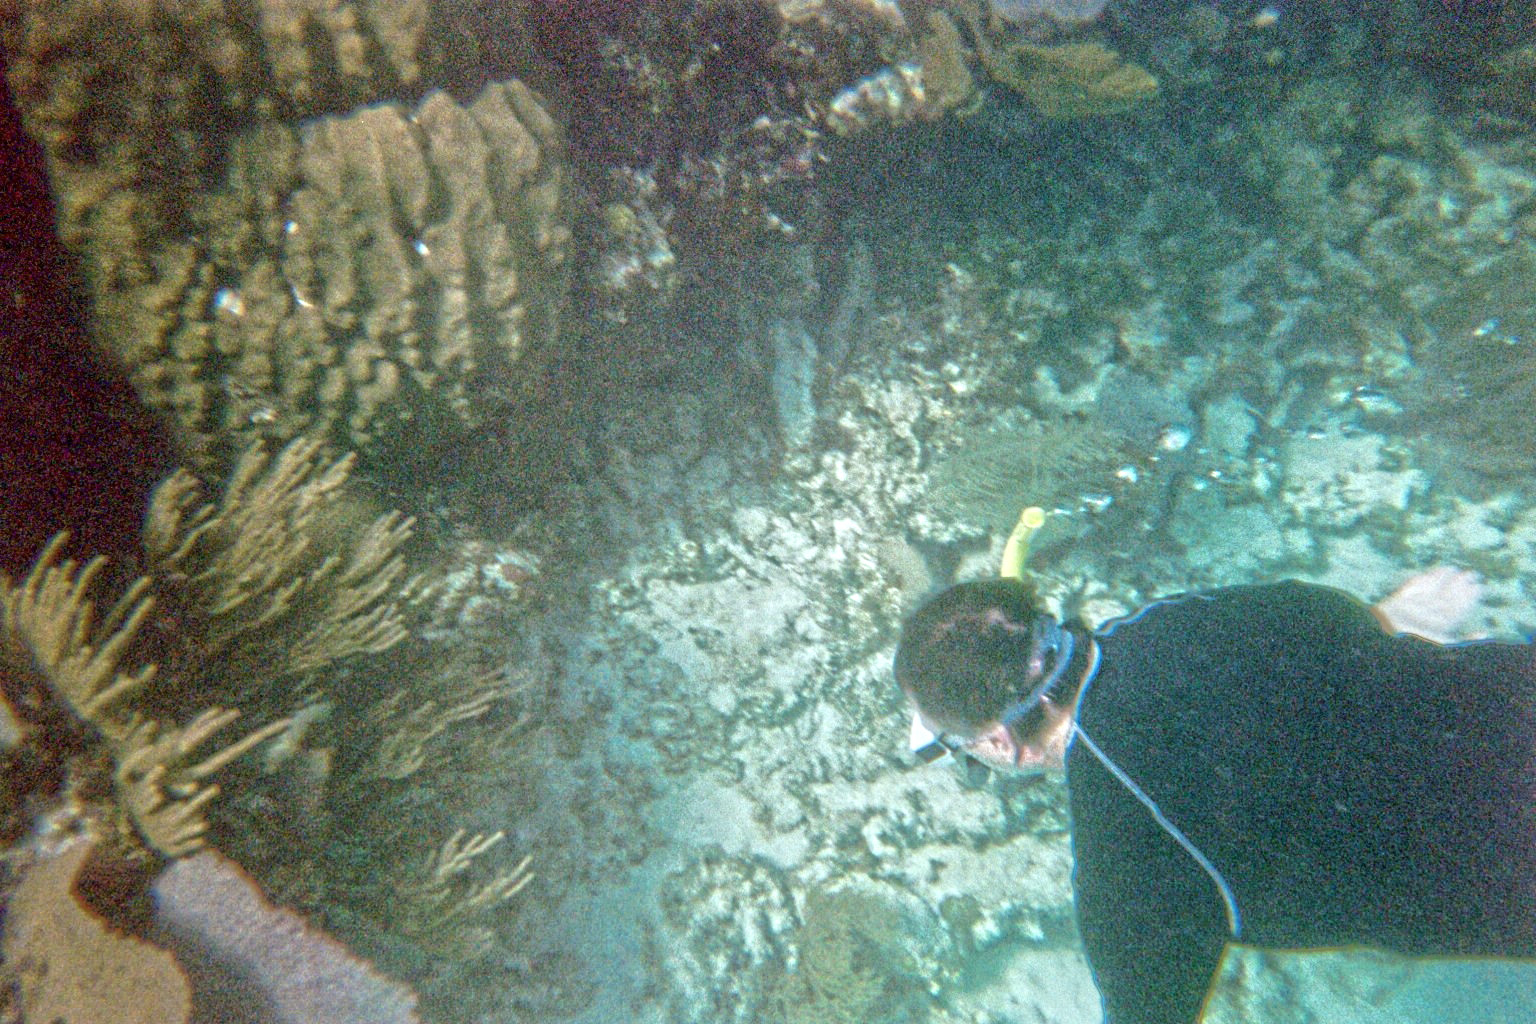 Belize Central America geology travel trip tour reef karst caves ocean coral copyright RocDocTravel.com